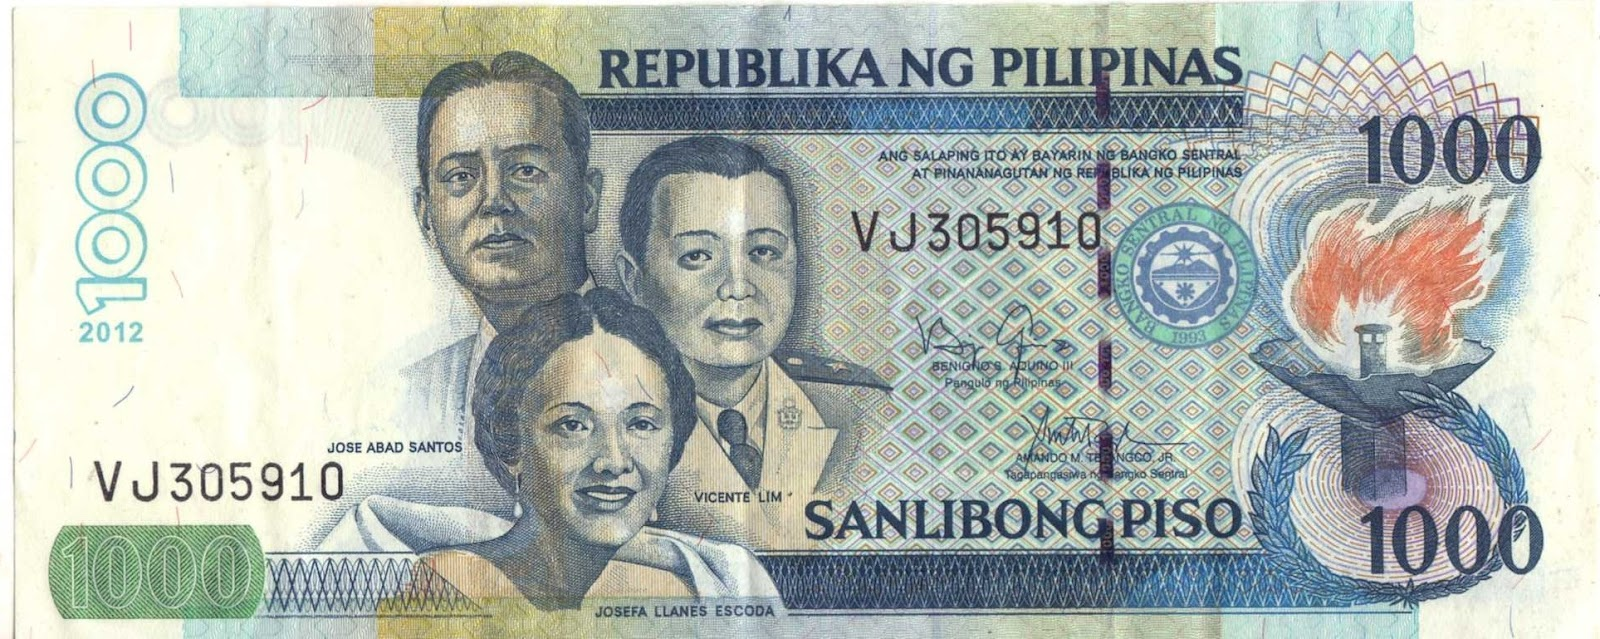 Pinoy Pop Culture: Notes on the New 1000-Peso Banknotes